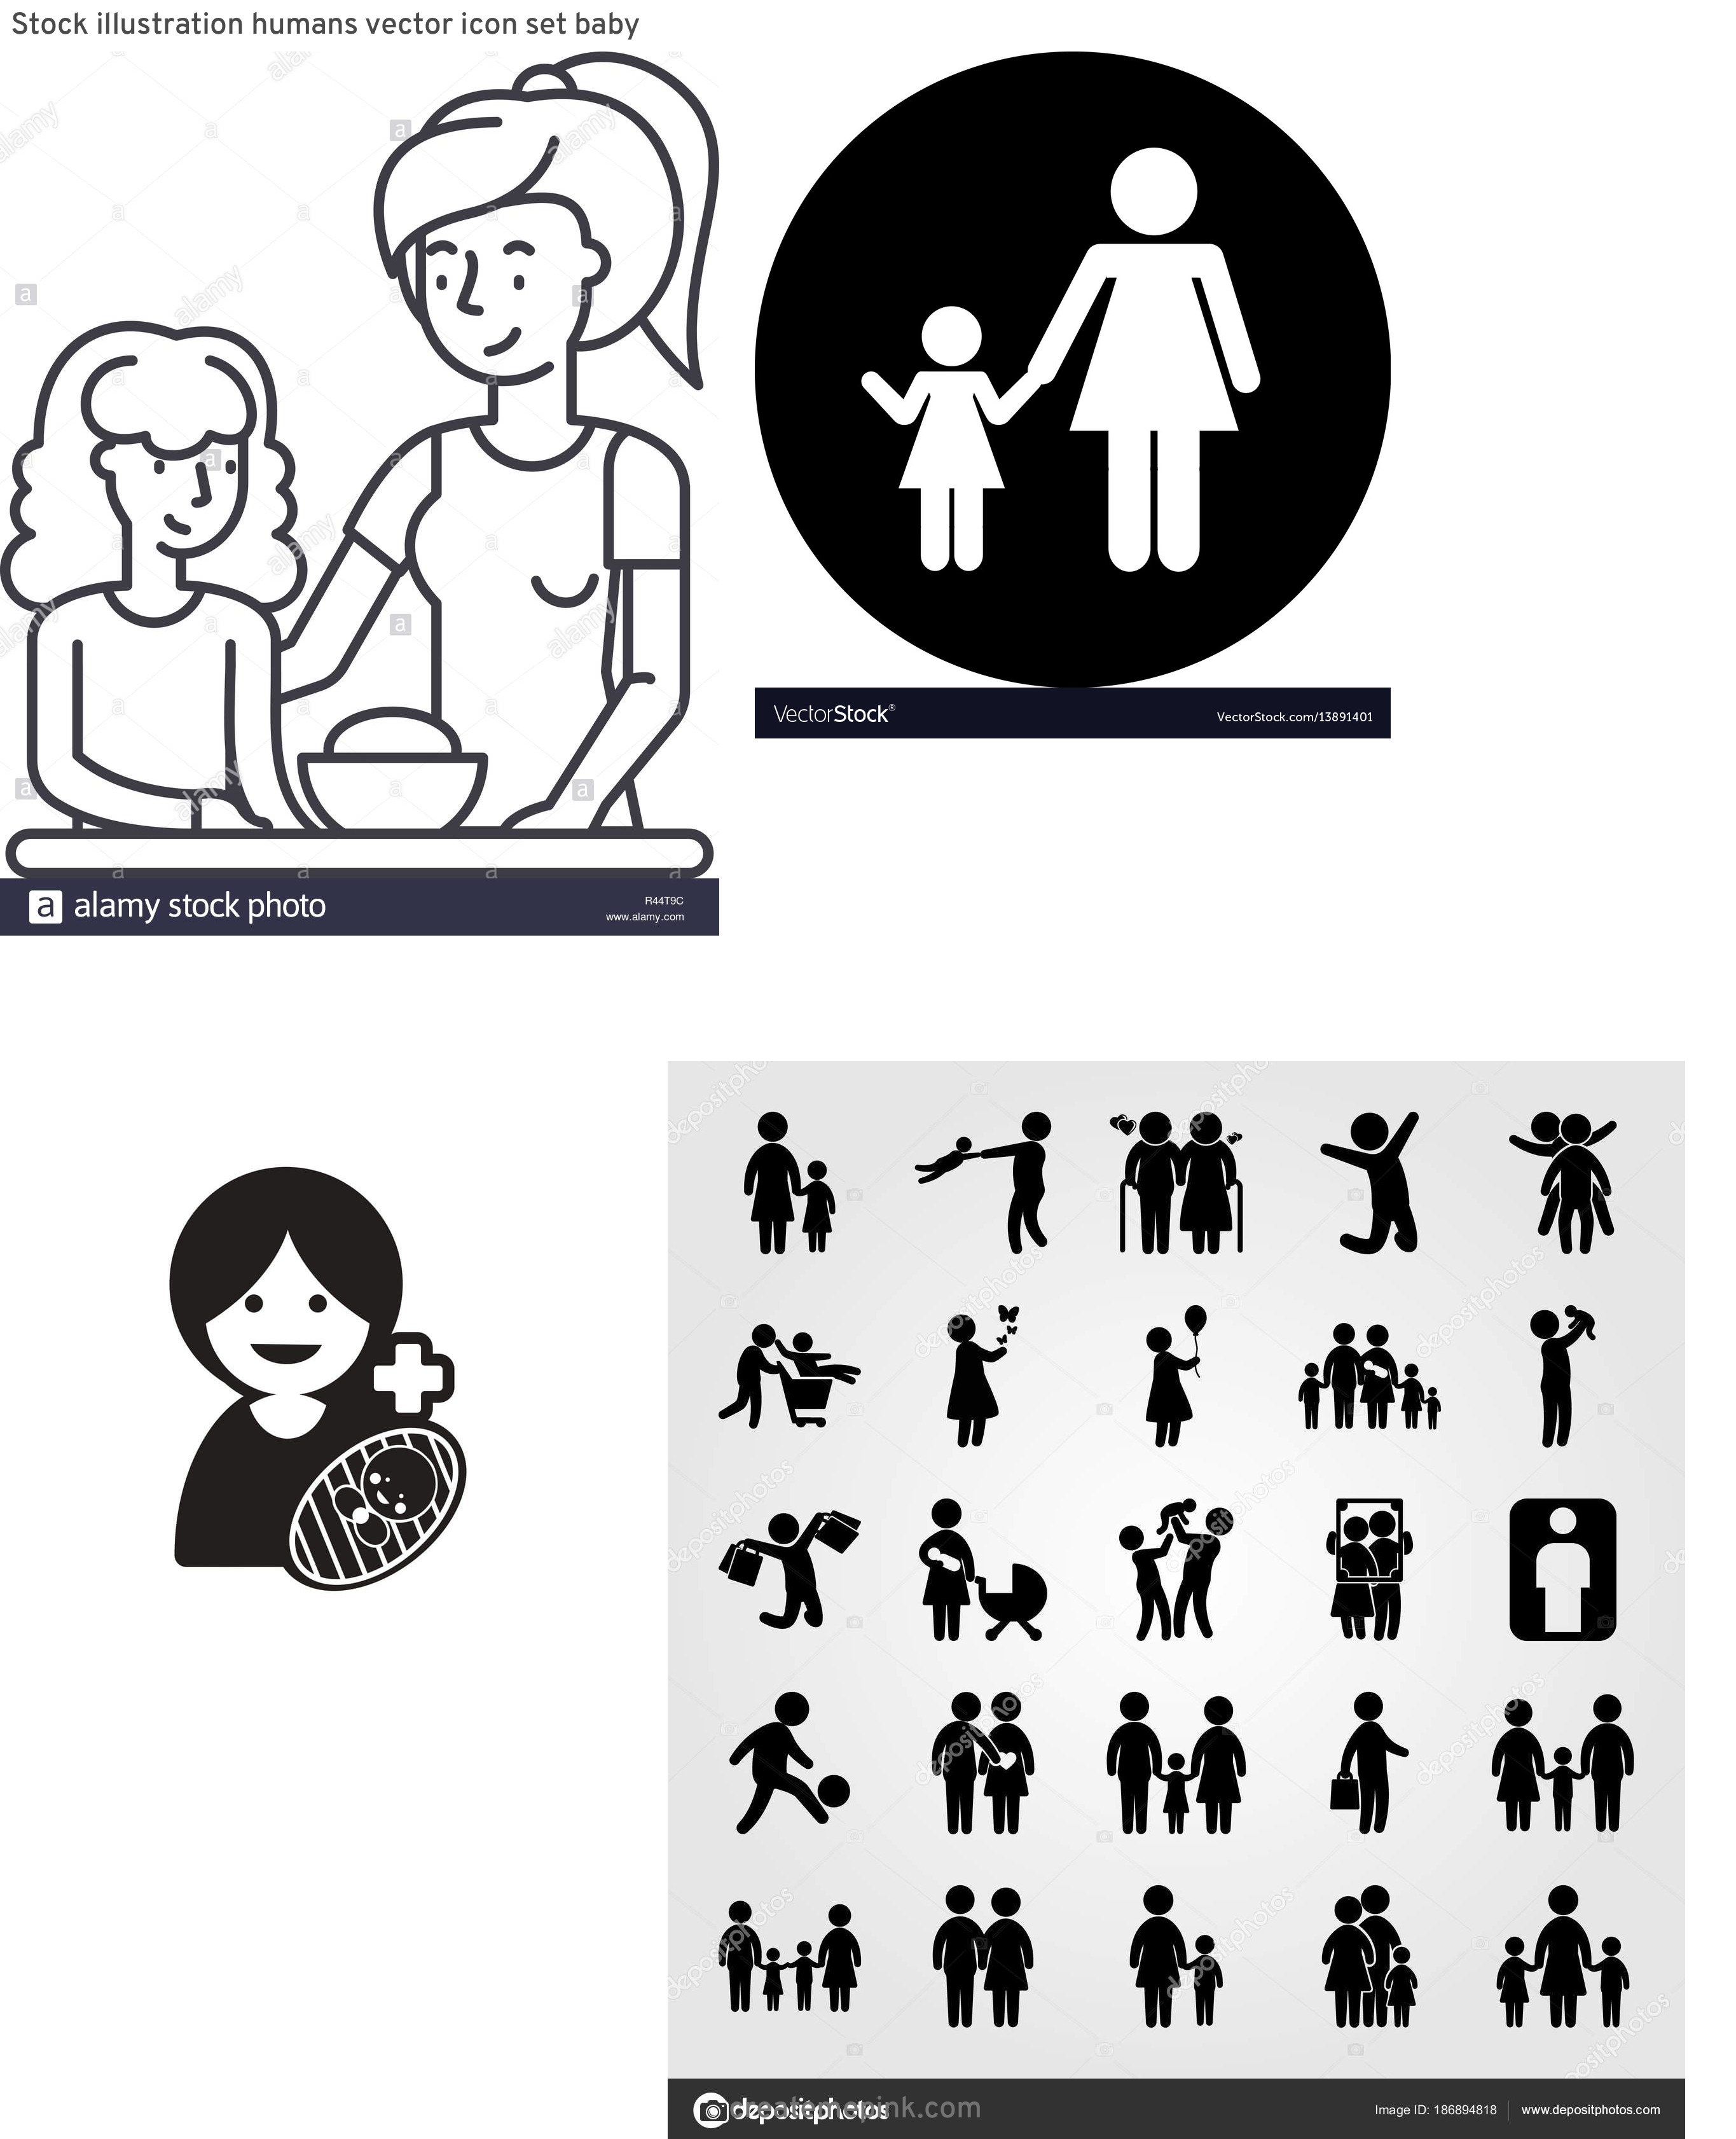 Daughter Vector Icons: Stock Illustration Humans Vector Icon Set Baby